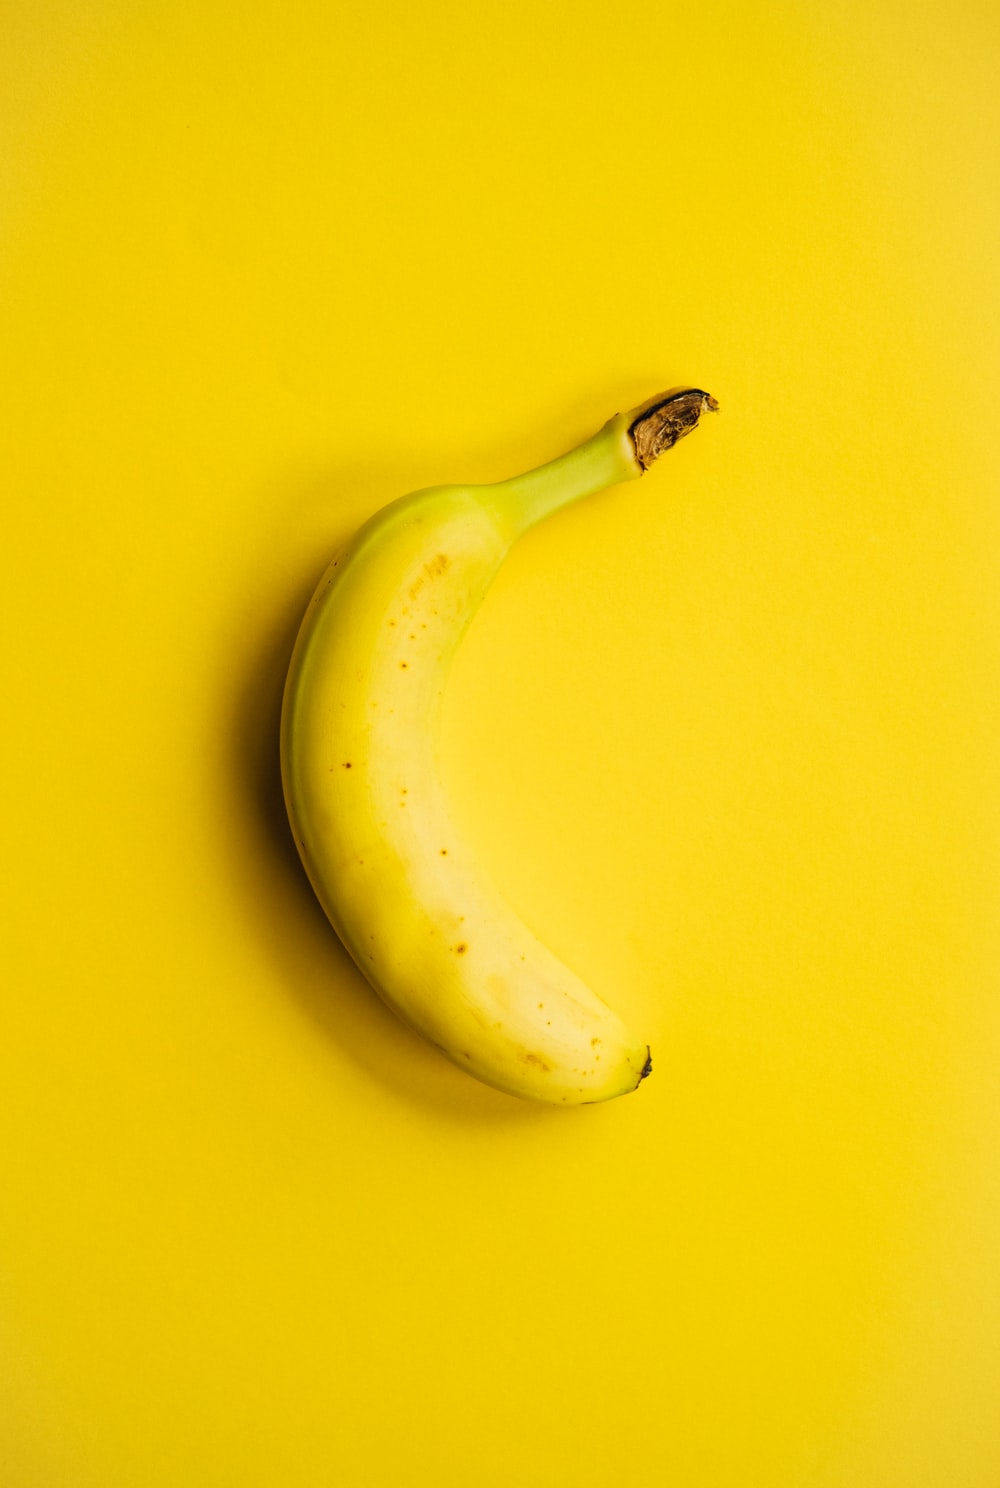 9487e1f3cef28 yellow banana fruit on yellow surface